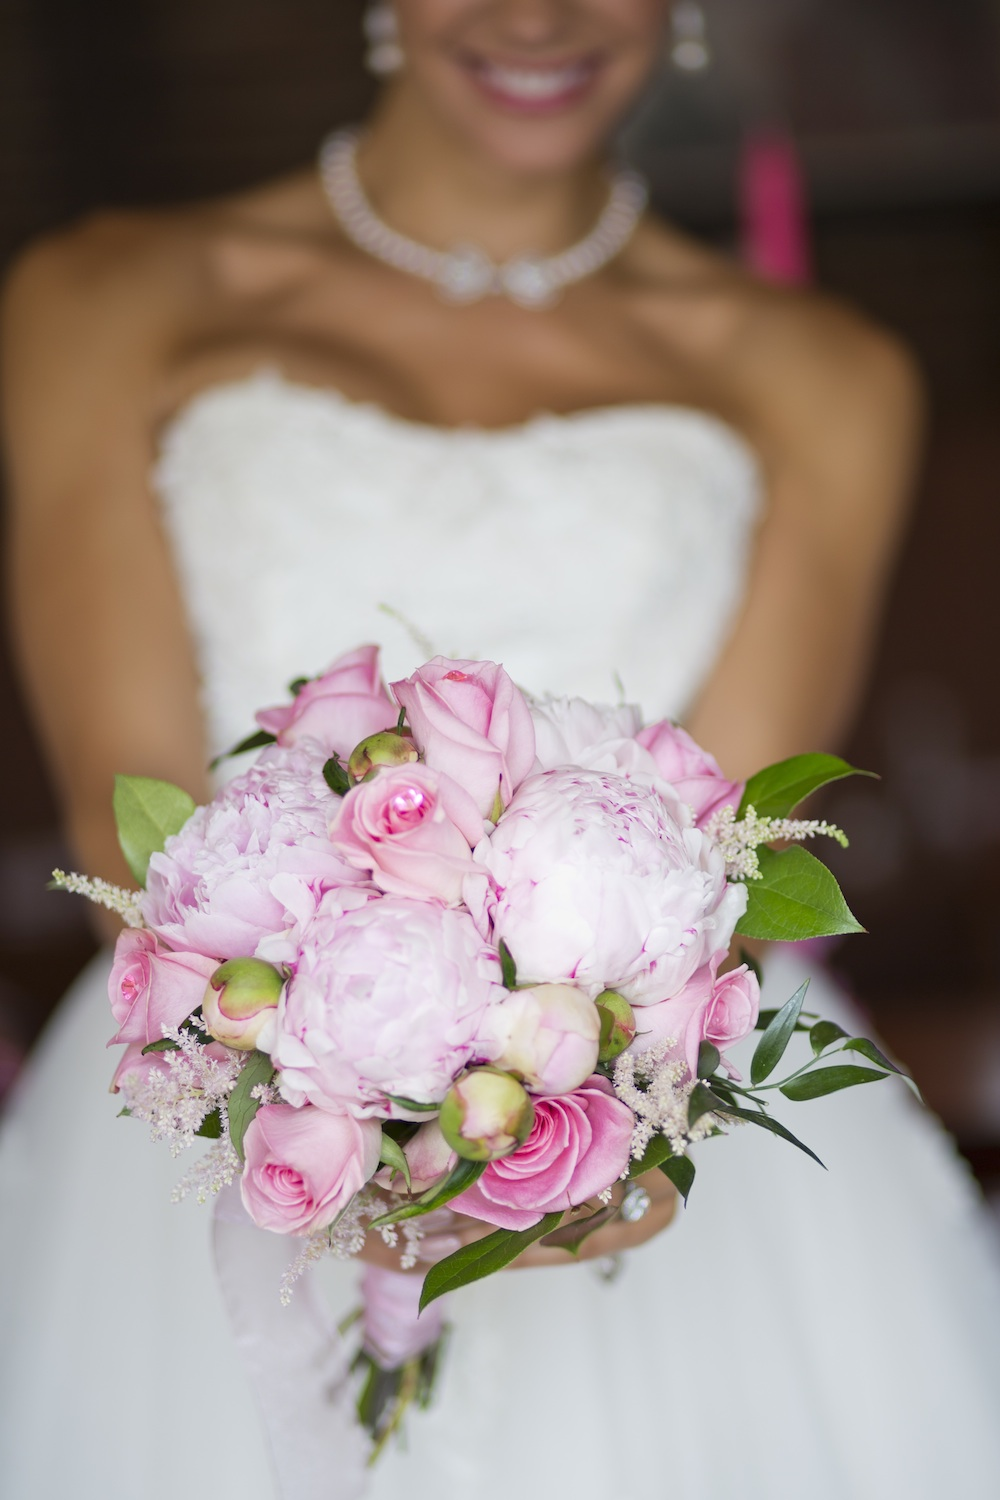 Pink Wedding Bouquet with Peonies and Roses + a Crystal Pink Pick in a Rose  from Media Florist / photo by Krista Patton Photography